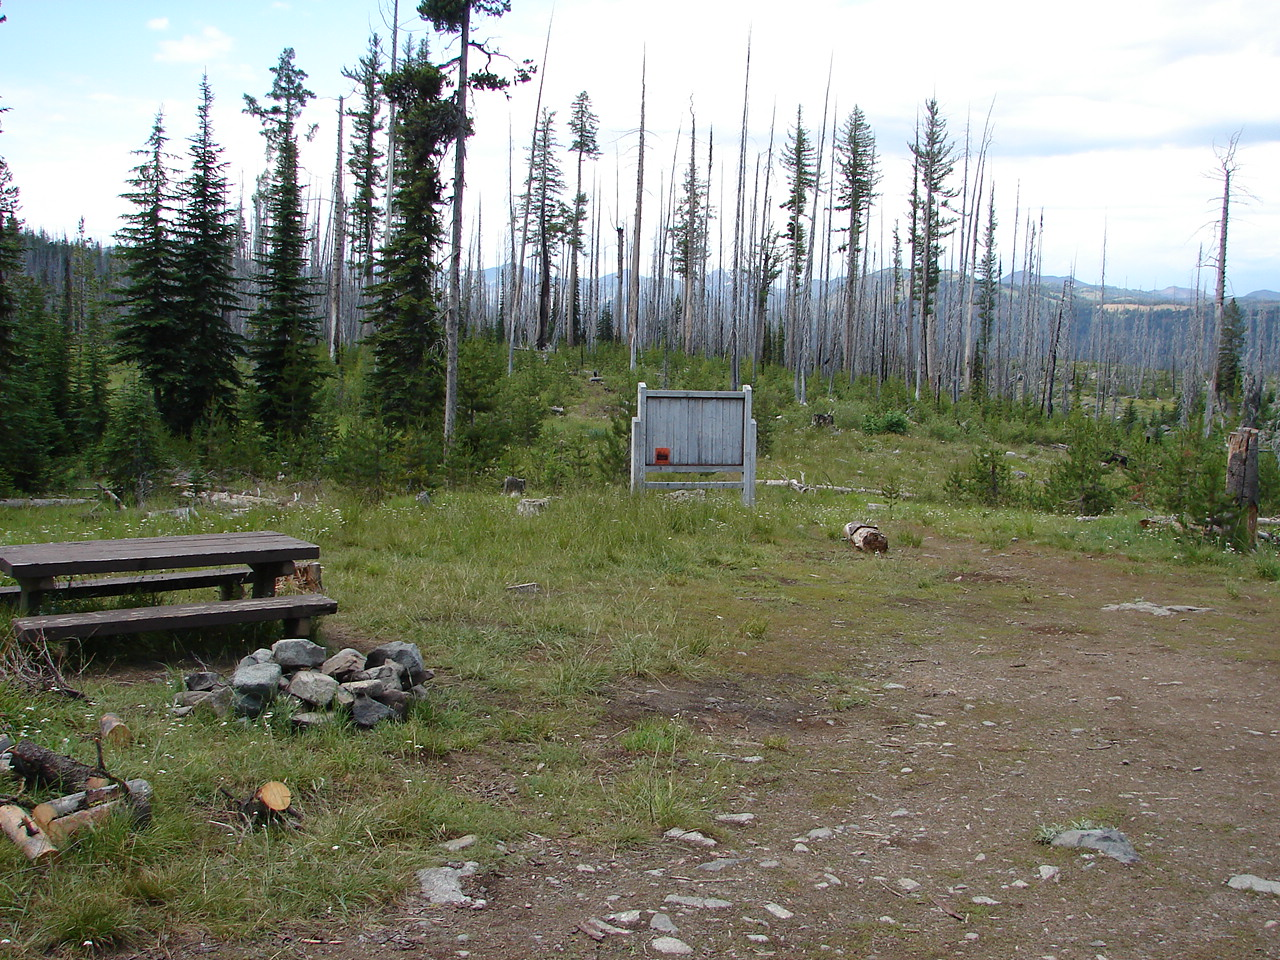 Mountain trailhead parking area with a sign and picnic table